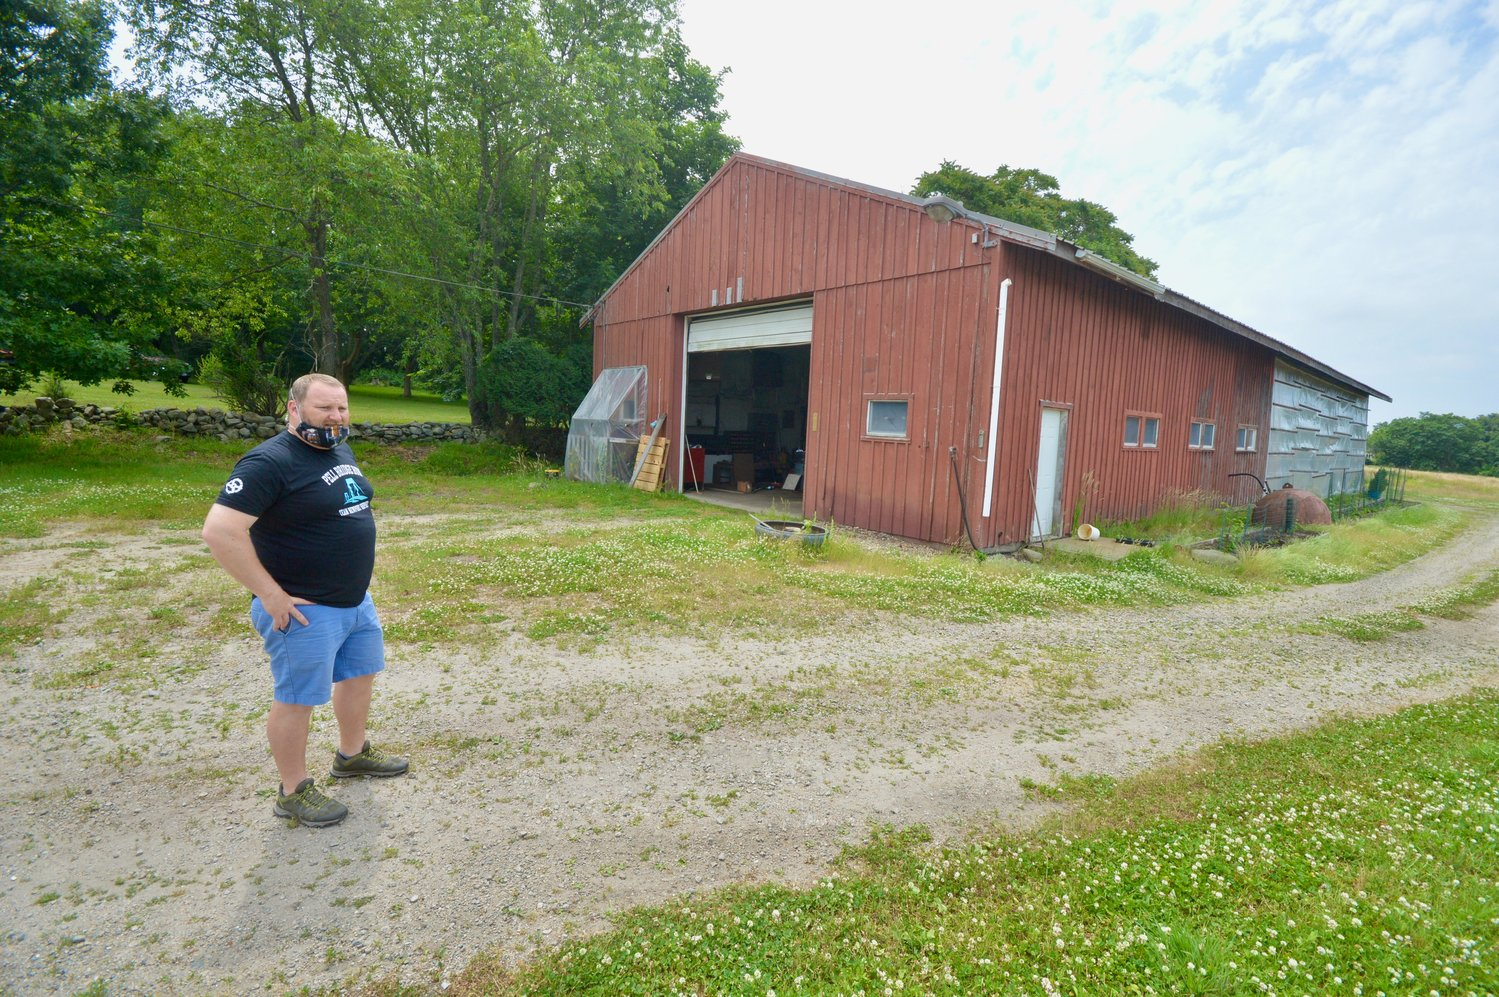 Matt Gray, president of Ragged Island Brewing Co., stands next to an old barn on the former Van Hof property that will be transformed into a taproom. The brewery has, for now, scuttled plans for a new building further west on the farmland.